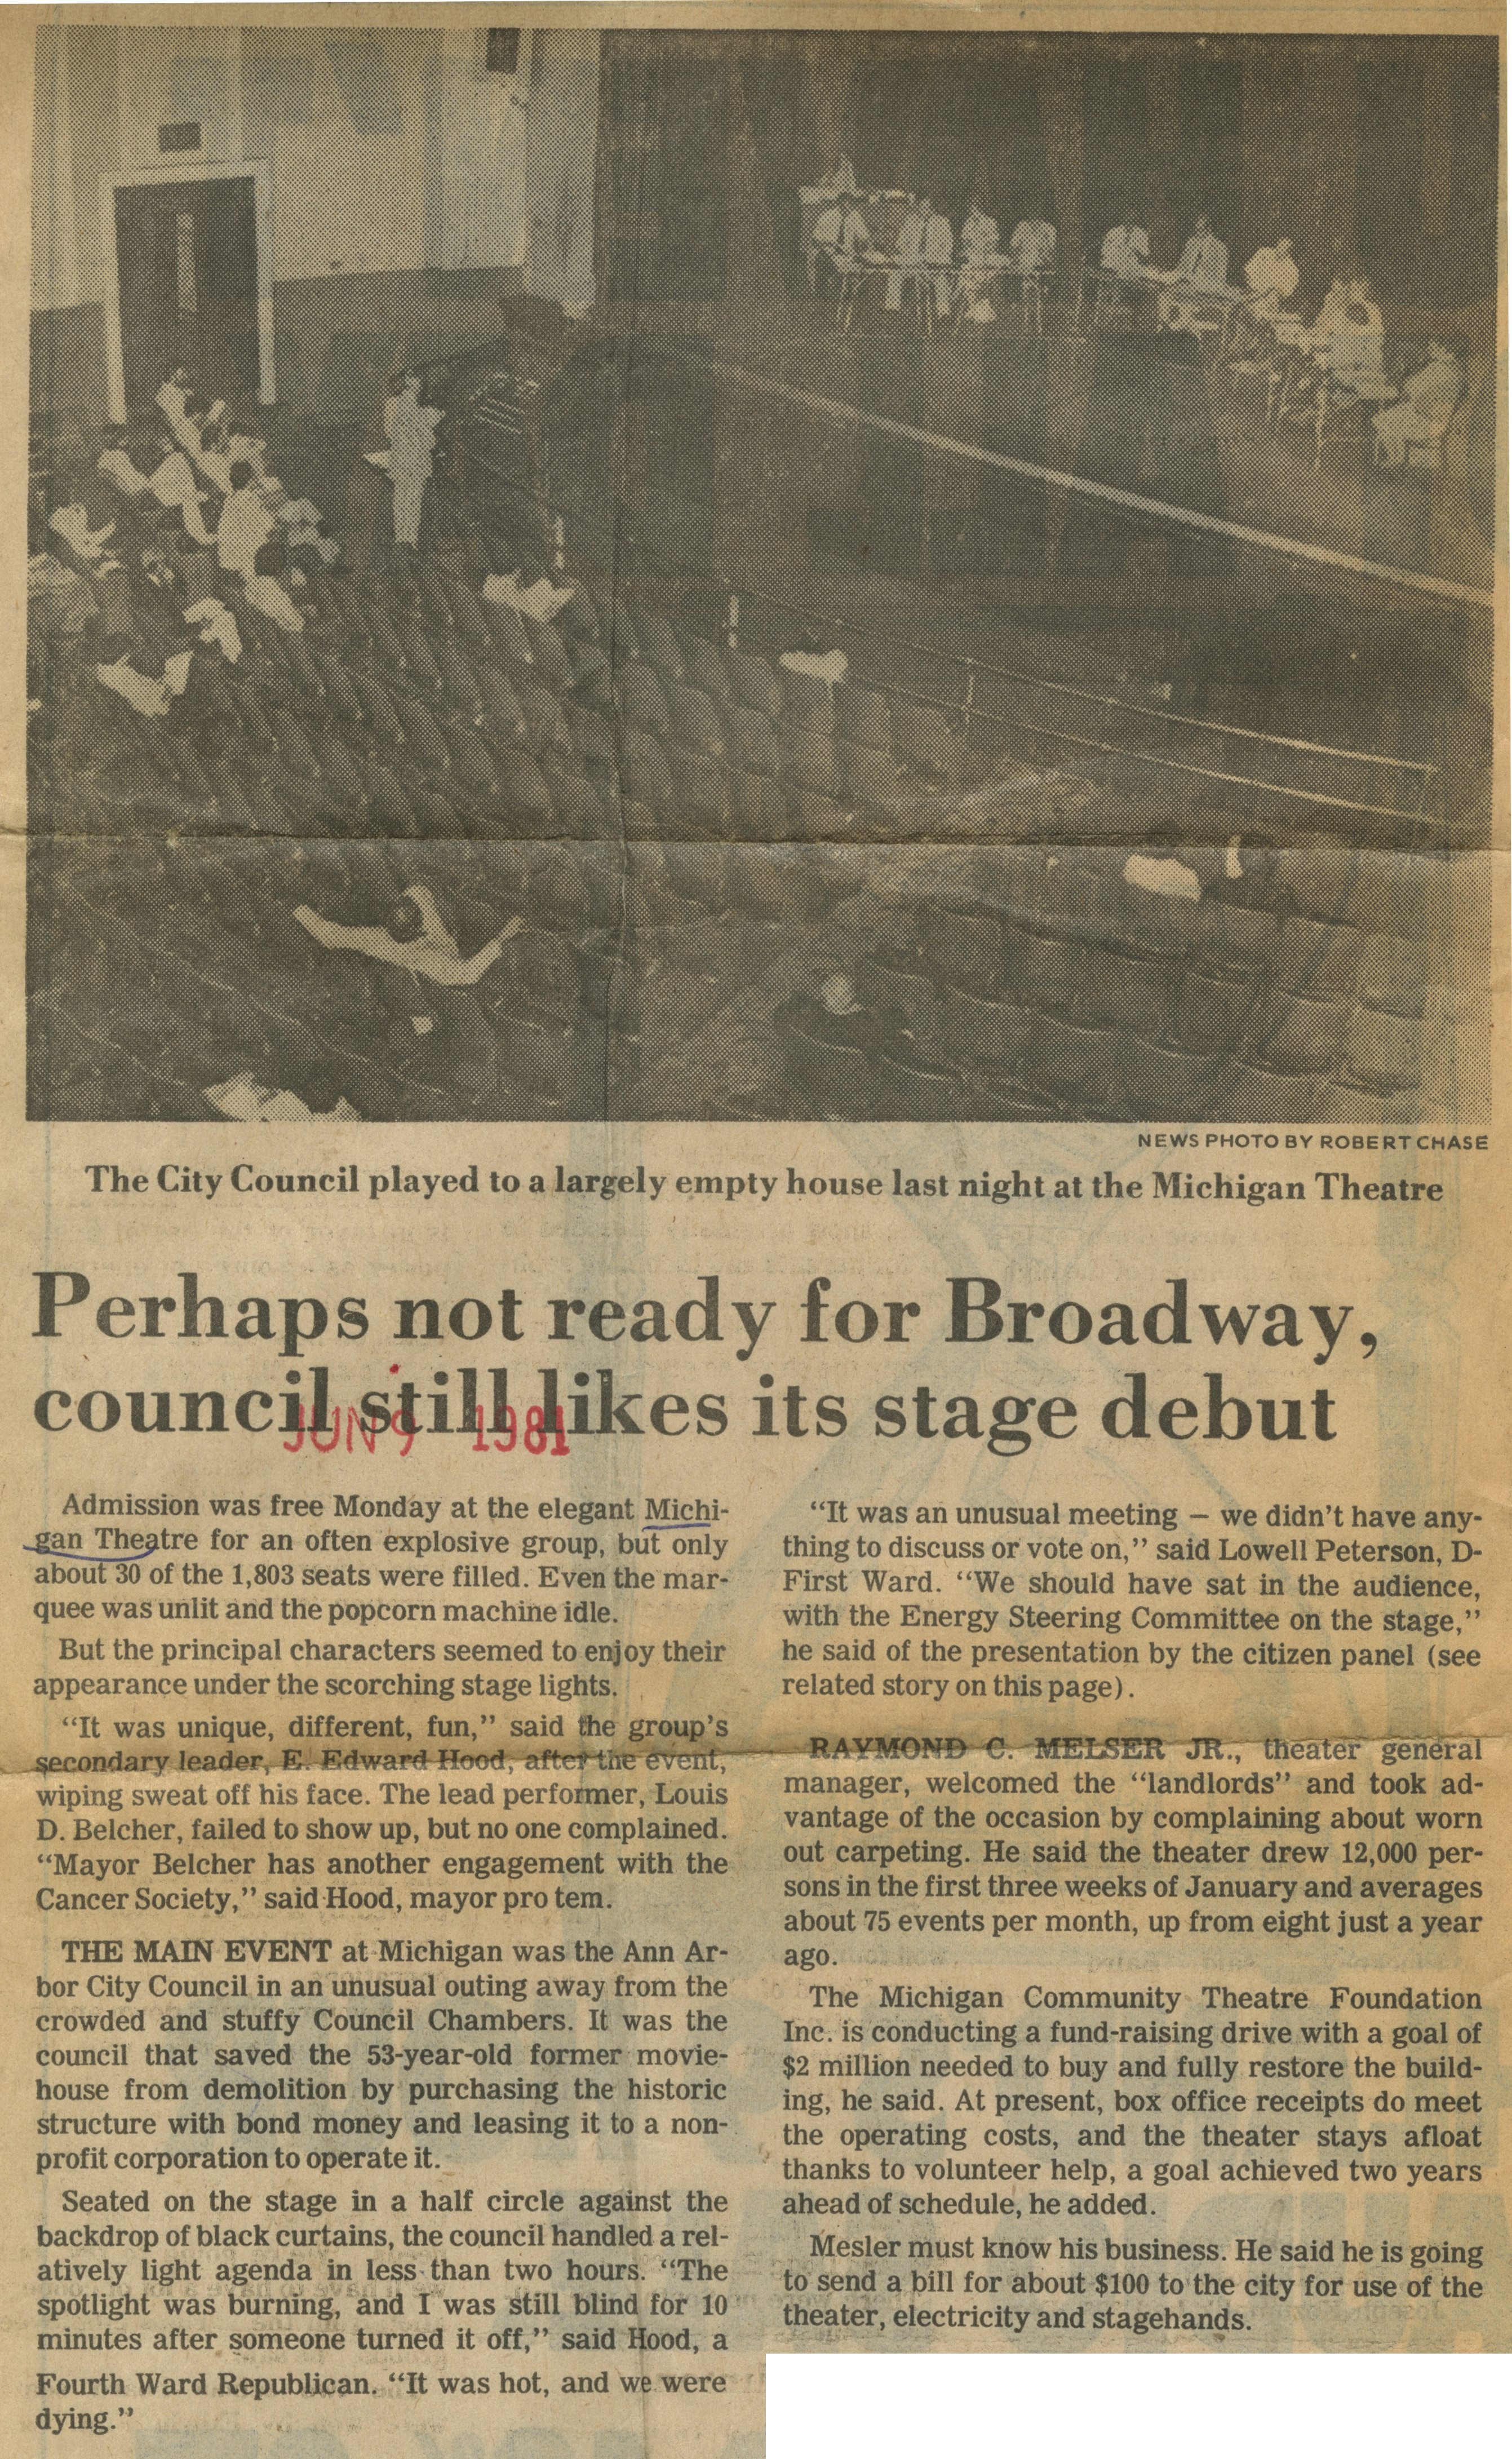 Perhaps Not Ready For Broadway, Council Still Likes Its Stage Debut image